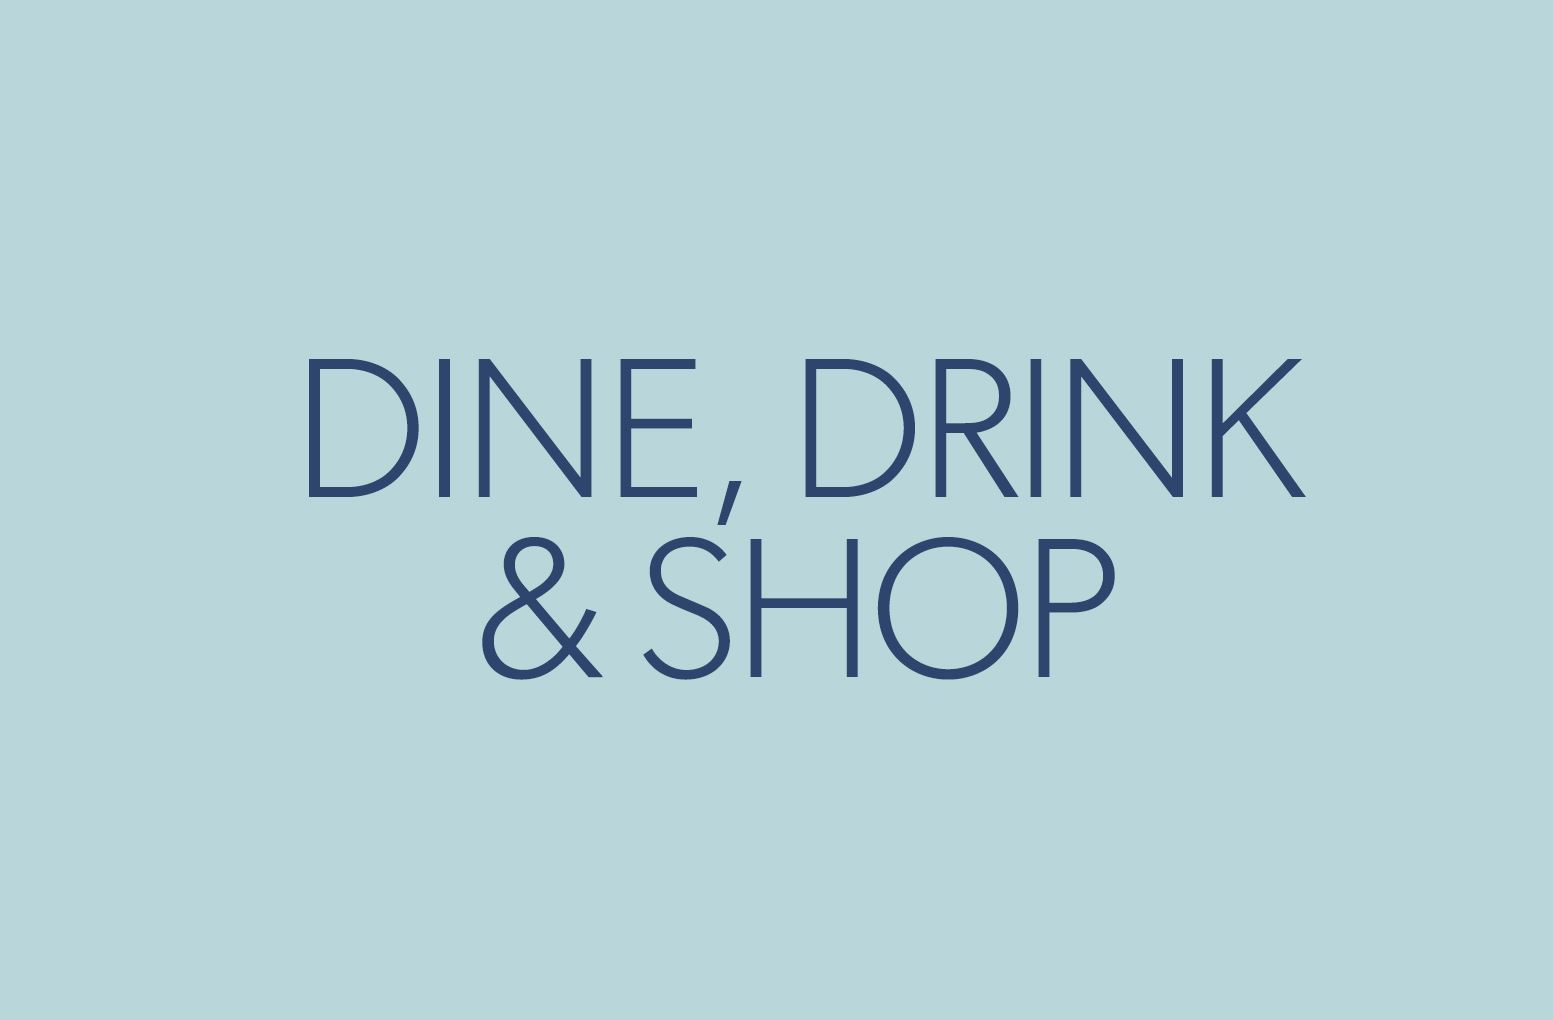 dine, drink, shop